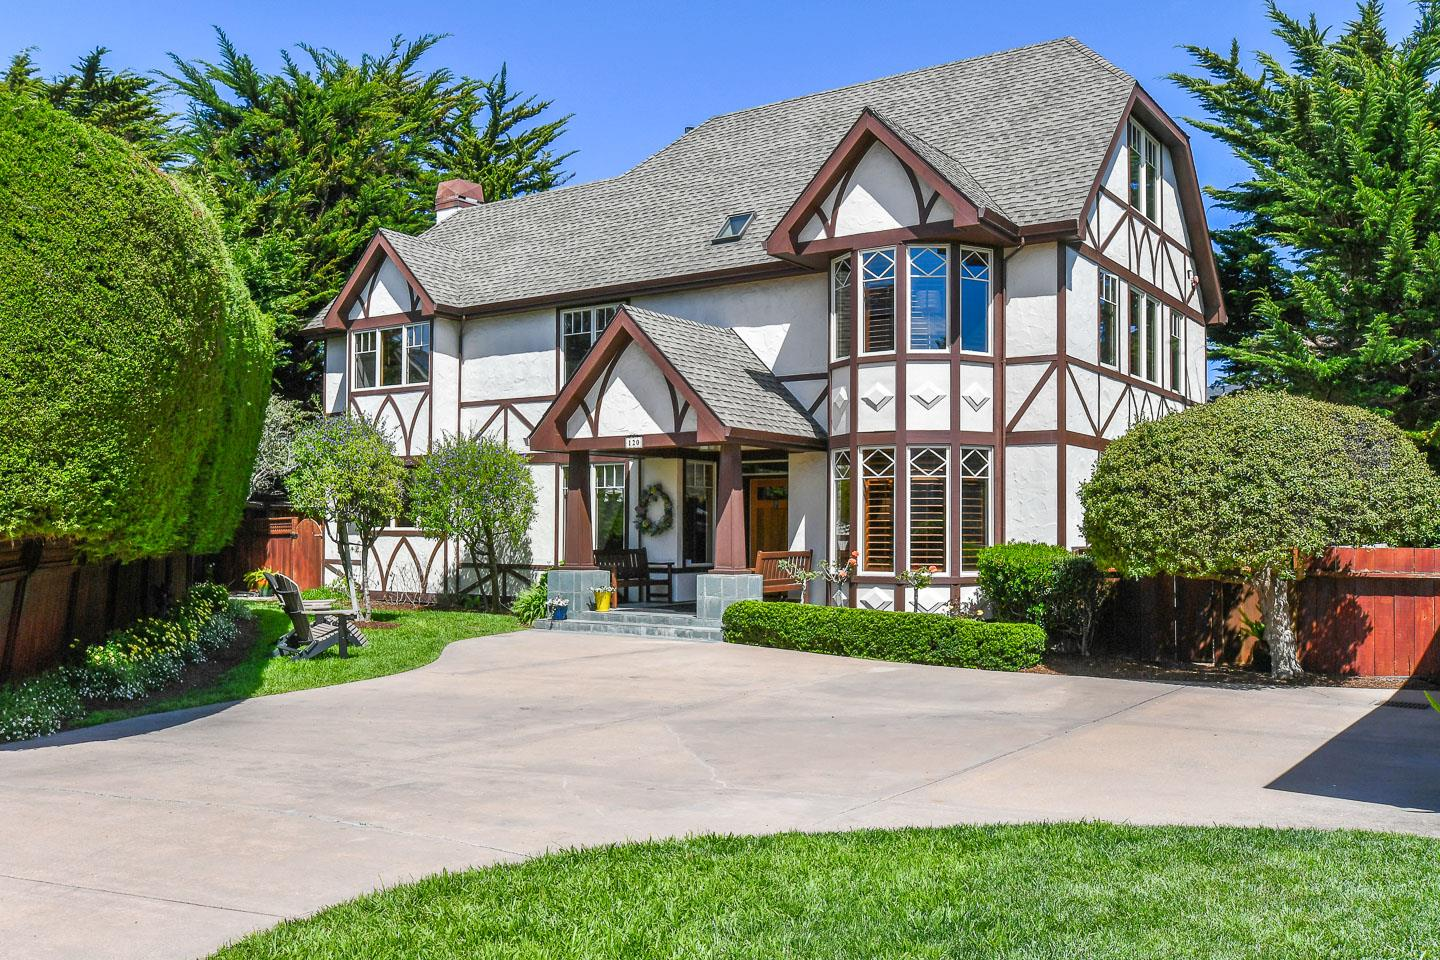 Just dropped price to $1,995,000!!! Unbeatable, stunning, gated, executive, Tudor-style Estate, sits in one of the most premiere & coveted locations of Santa Cruz ~ just a stone's throw from World famous West Cliff Drive, beaches & the Pacific ocean! This majestic, 4 BR, 3BA, 2800+ sq.ft. home, exudes quality & charm, offers peace, tranquility, exceptional privacy & yet is only moments to the beach & leading Santa Cruz attractions such as Lighthouse Point, Steamer Lane, Surfing Museum, the Santa Cruz Wharf, Monterey Bay Marine Sanctuary, Beach Boardwalk and Natural Bridges State Beach.Situated on an expansive, 10,800+ sq.ft. lot of meticulously maintained & professionally landscaped grounds, this light-filled, beach property also features vaulted ceilings, skylights, beautifully-framed bay windows, sparkling hardwood floors, gorgeous kitchen, and elegant, spacious, comfortable living throughout. Outstanding property in a truly breathtaking & unbeatable location! New Improved Price!